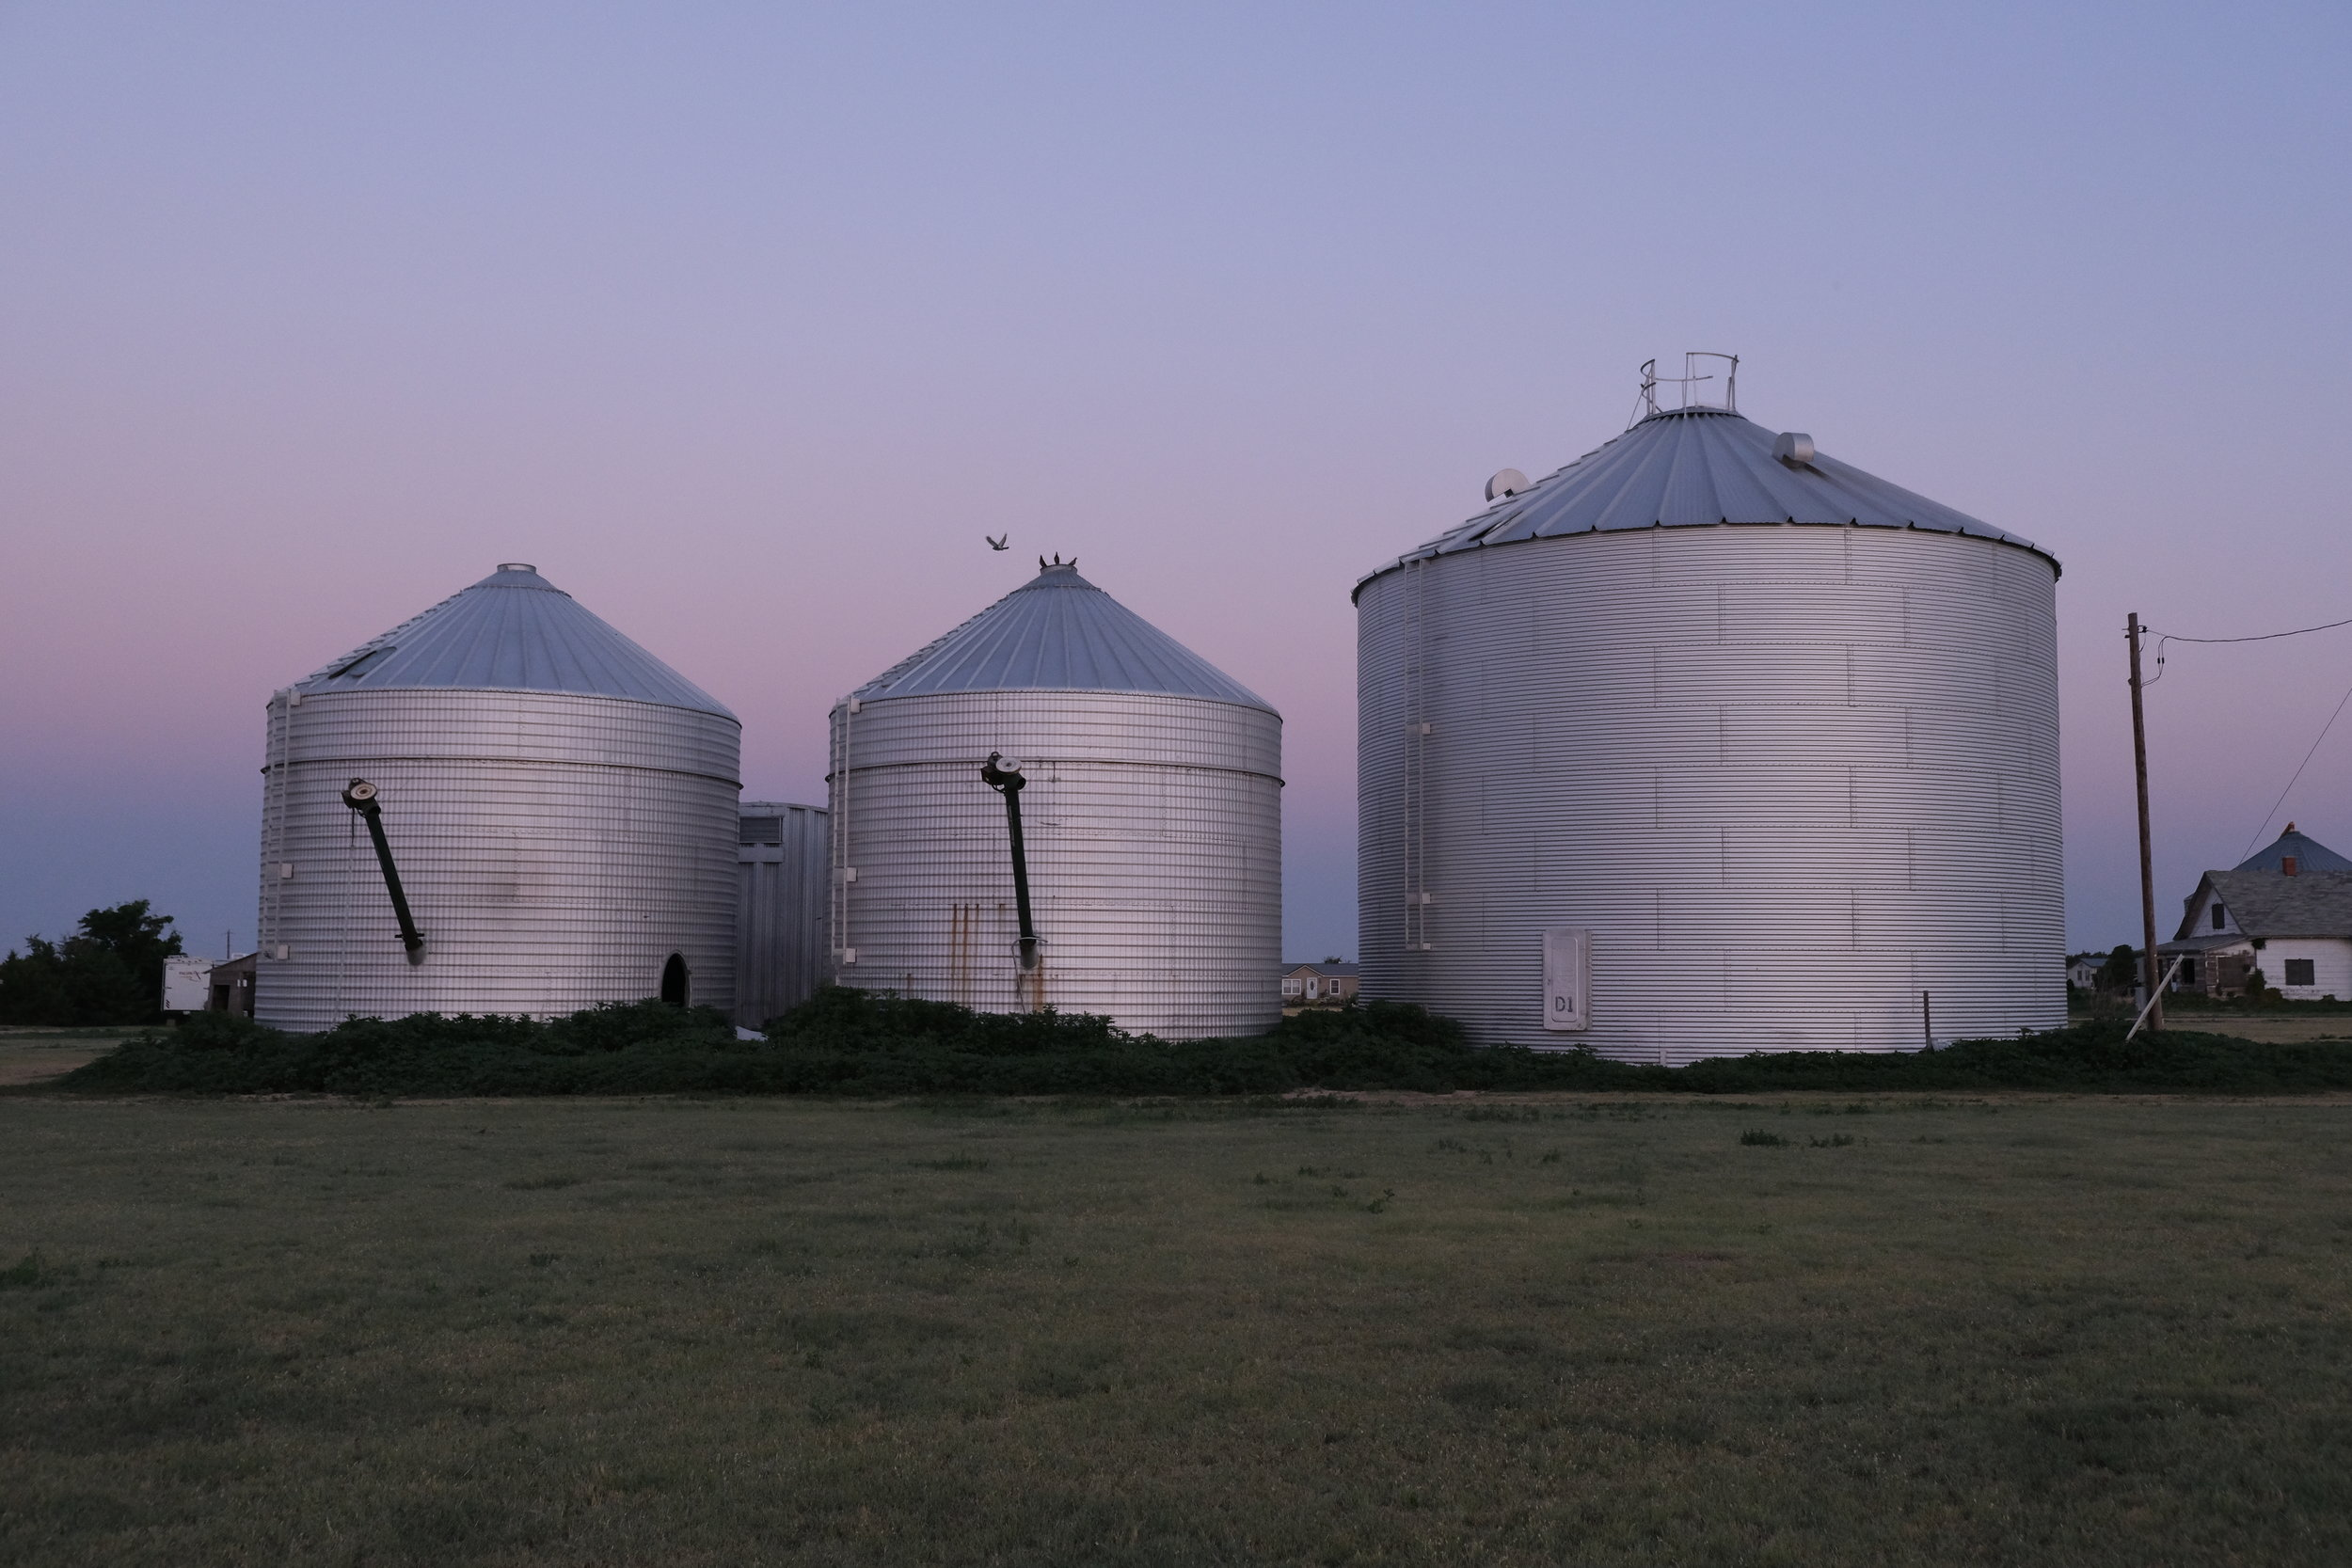 The prettiest these grain silos will ever look